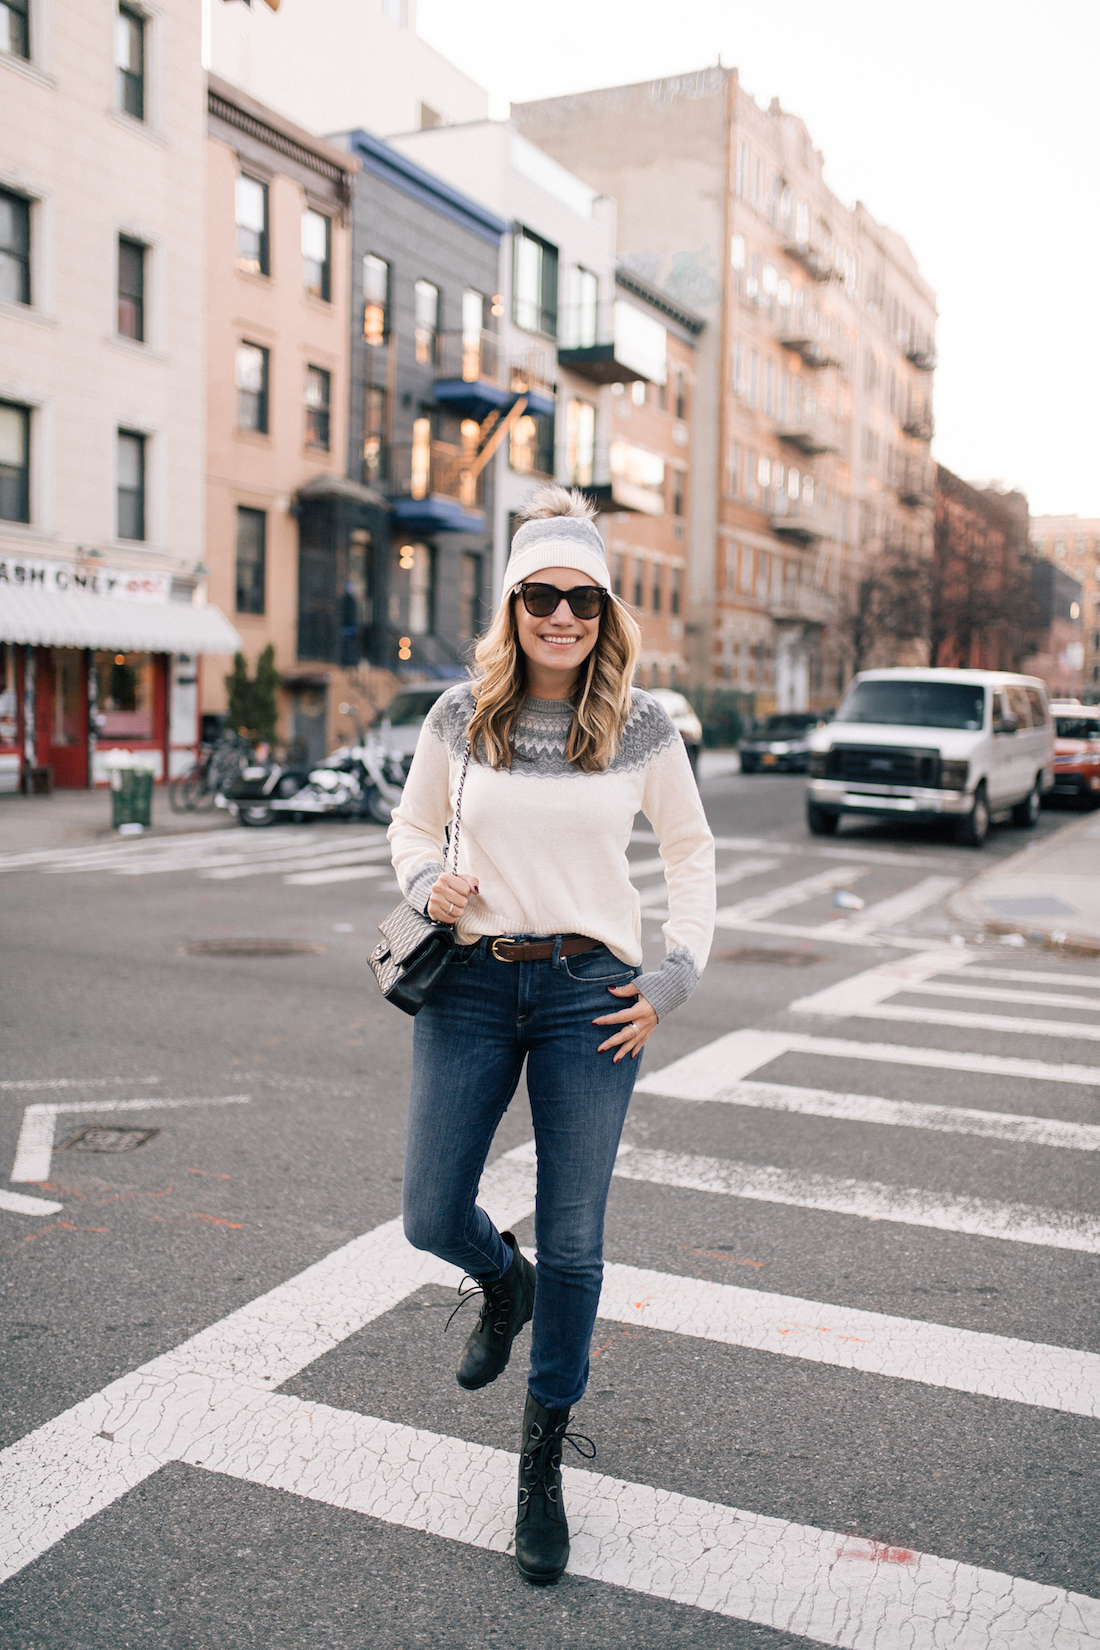 Outfit Details: Vineyard Vines Sweater + Hat (c/o) // Good American Jeans // Sorel Boots // Chanel Purse // Polaroid Sunglasses